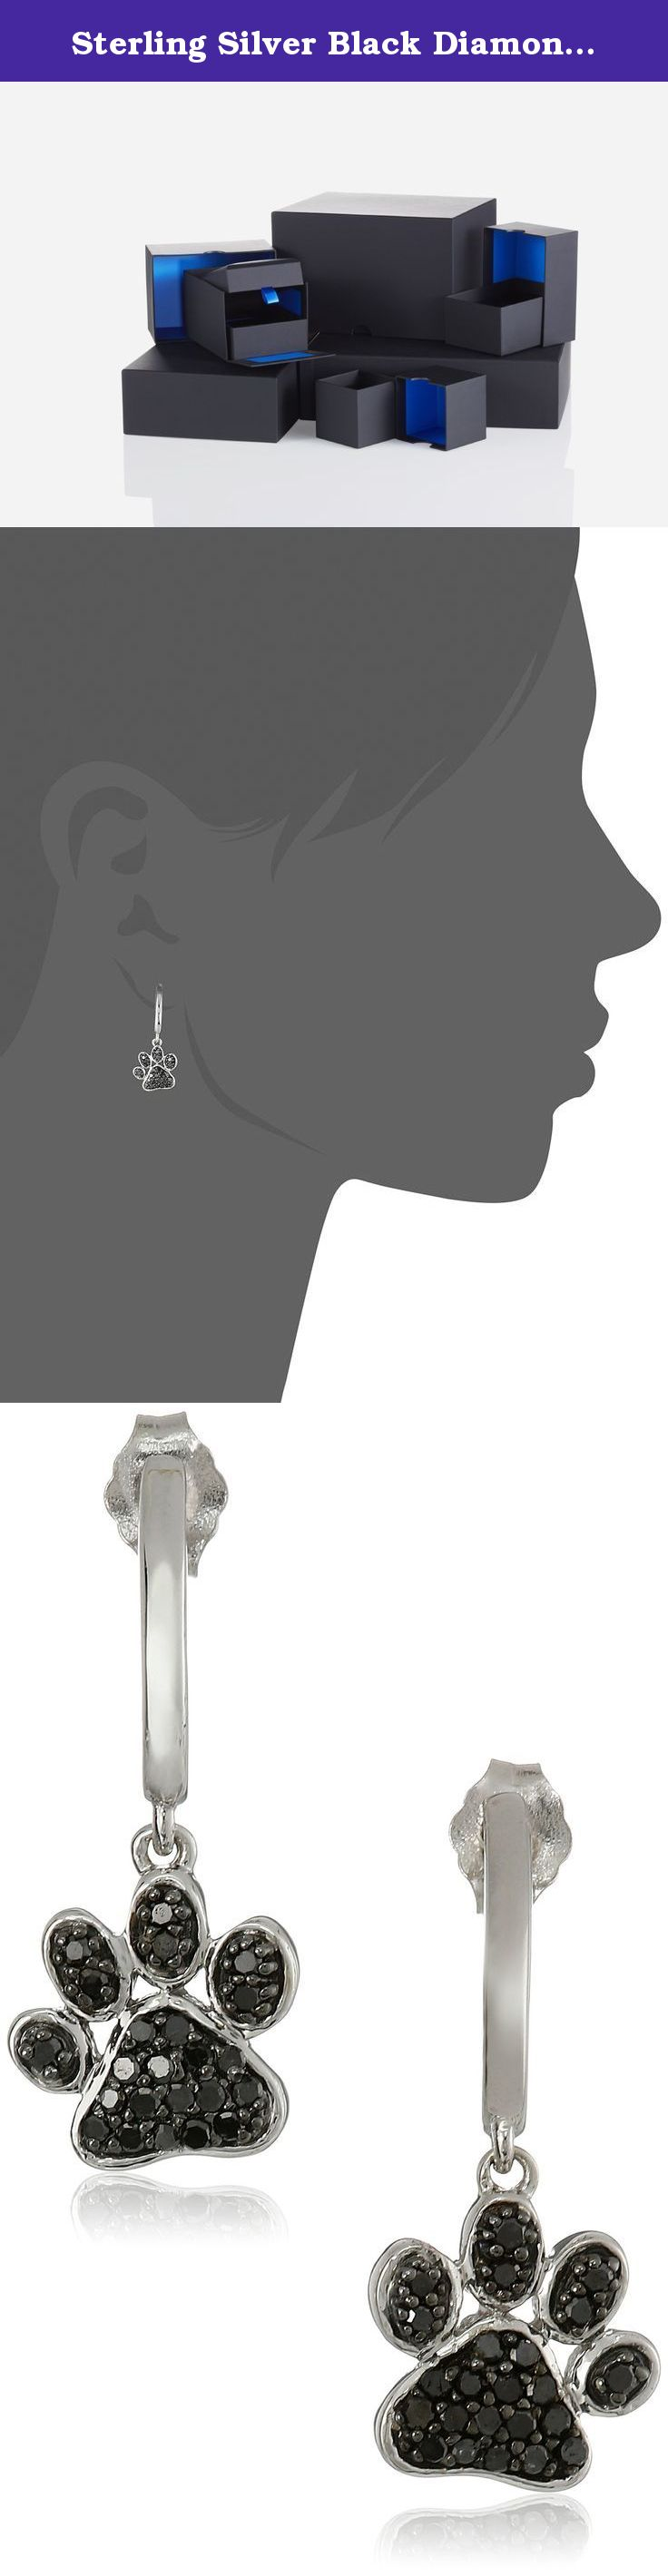 Sterling Silver Black Diamond Dog Paw Earrings (3/8 cttw). The Sterling Silver Black Diamond Dog Paw Earrings are an ideal gift for the classy, confident dog lover. The 925 sterling silver hoop earrings feature a shiny smooth finish that is sure to last and match well with your other favorite pieces. Dangling from each tiny hoop is a sterling silver dog paw charm with pave-set black diamonds of IJ color and I2-I3 clarity. Measuring .45 inches wide and 1.11 inches long, these hoop earrings...